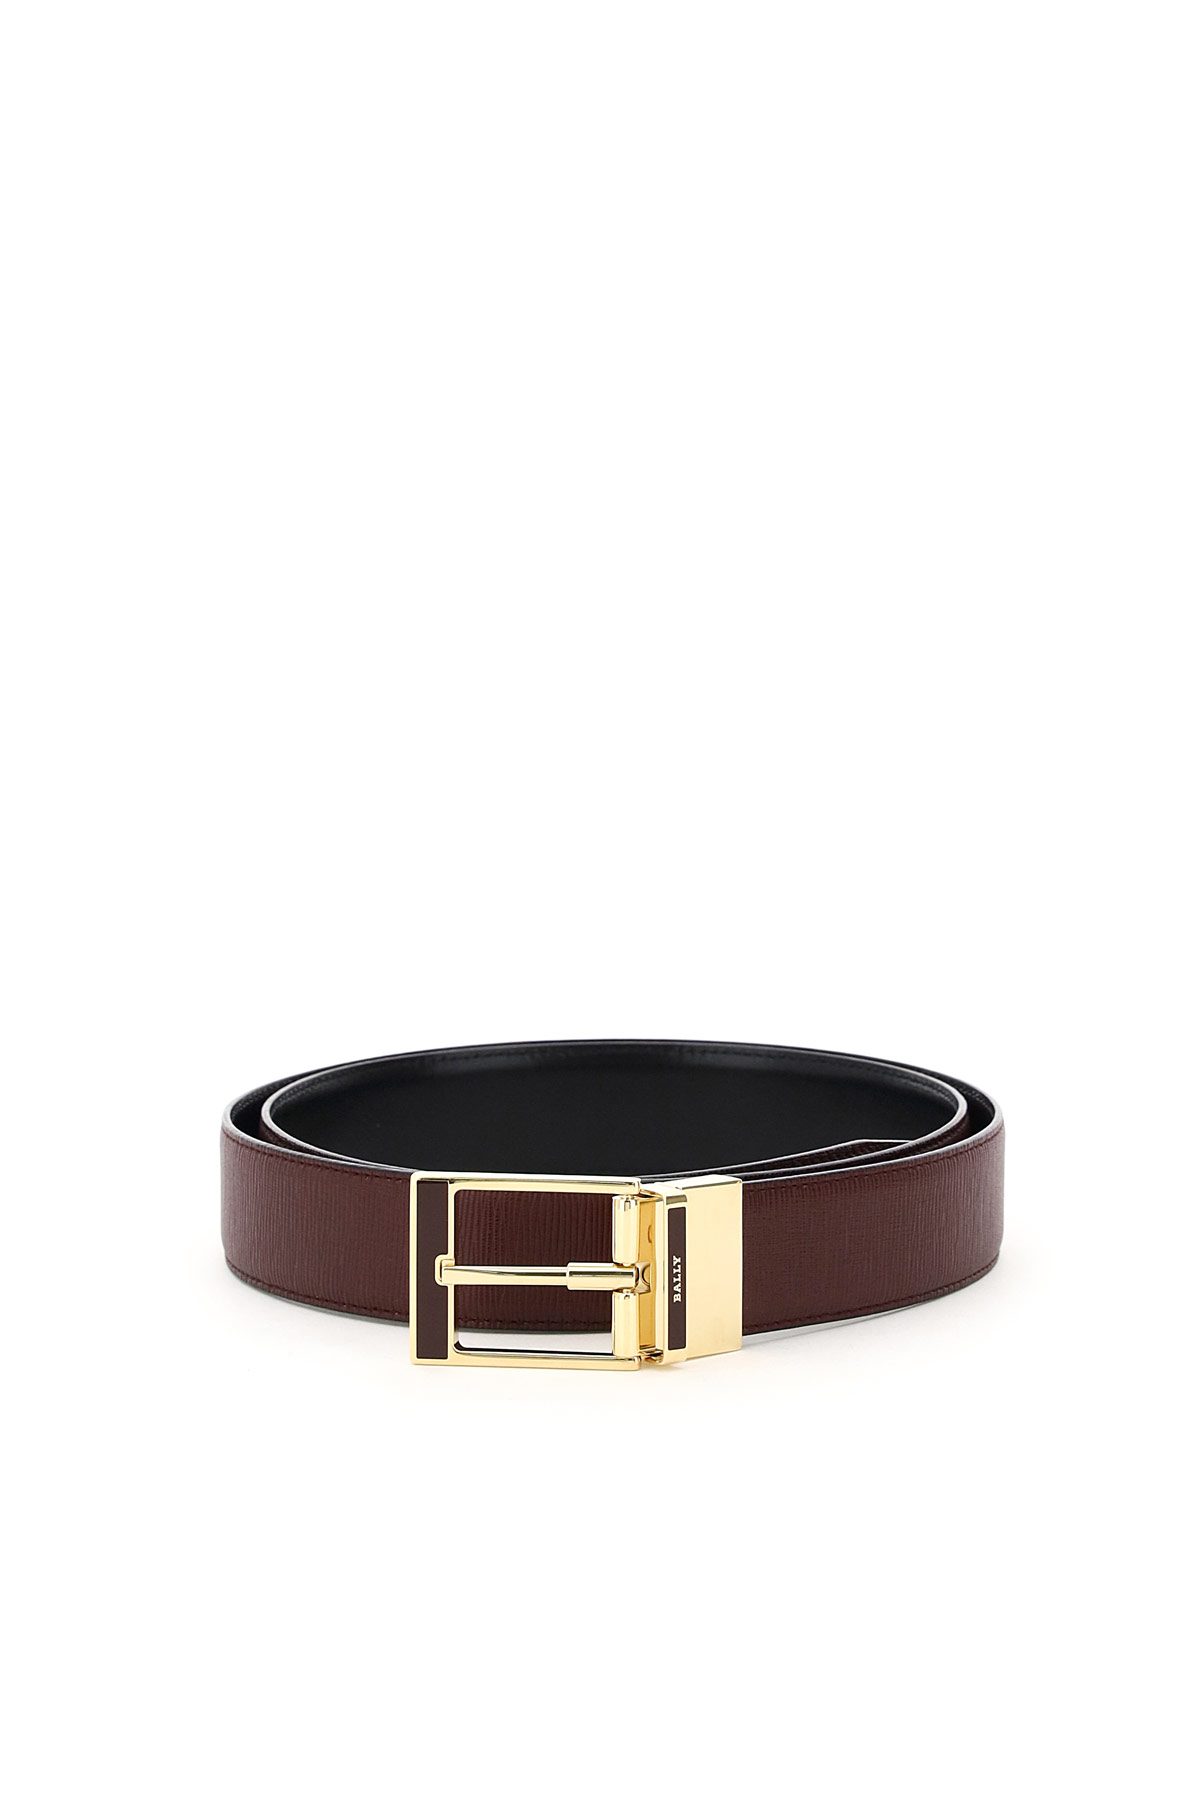 BALLY SERET 35 REVERSIBLE BELT 110 Red, Purple, Black Leather